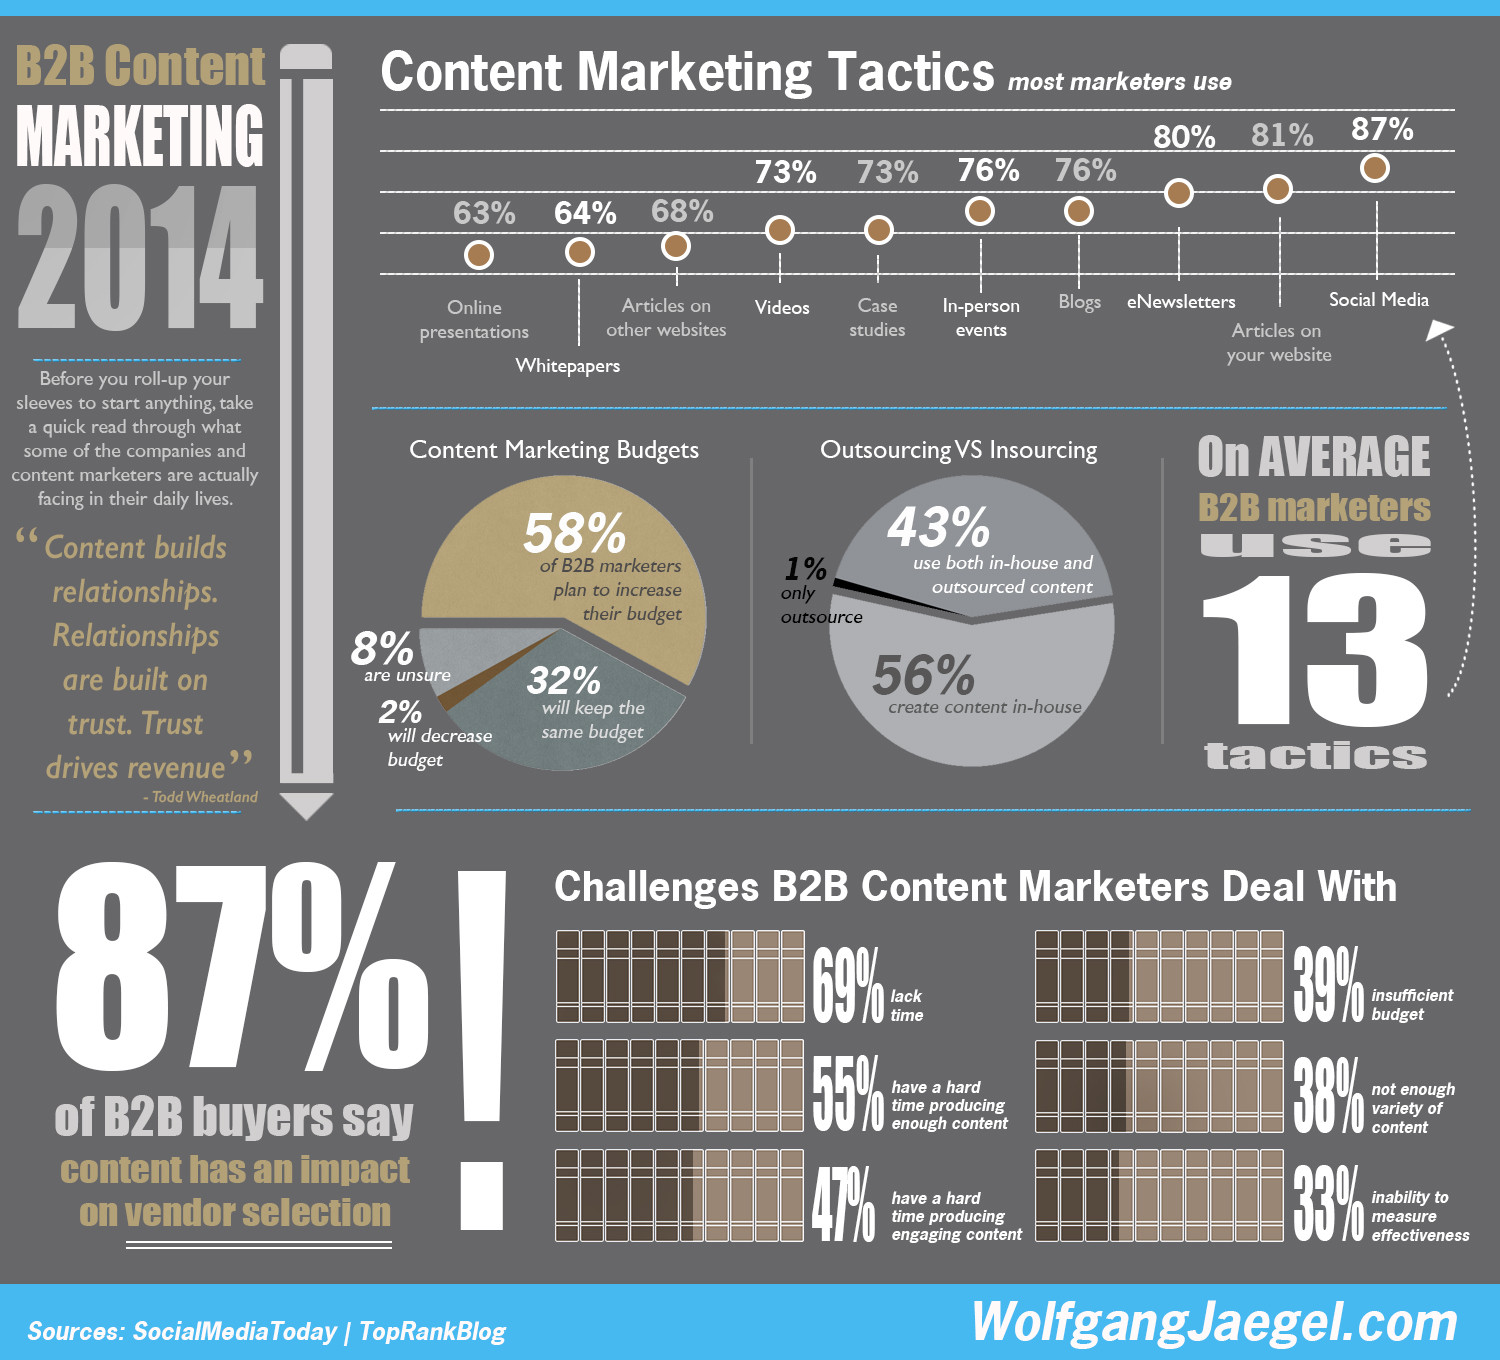 B2B Content Marketing 2014 Infographic